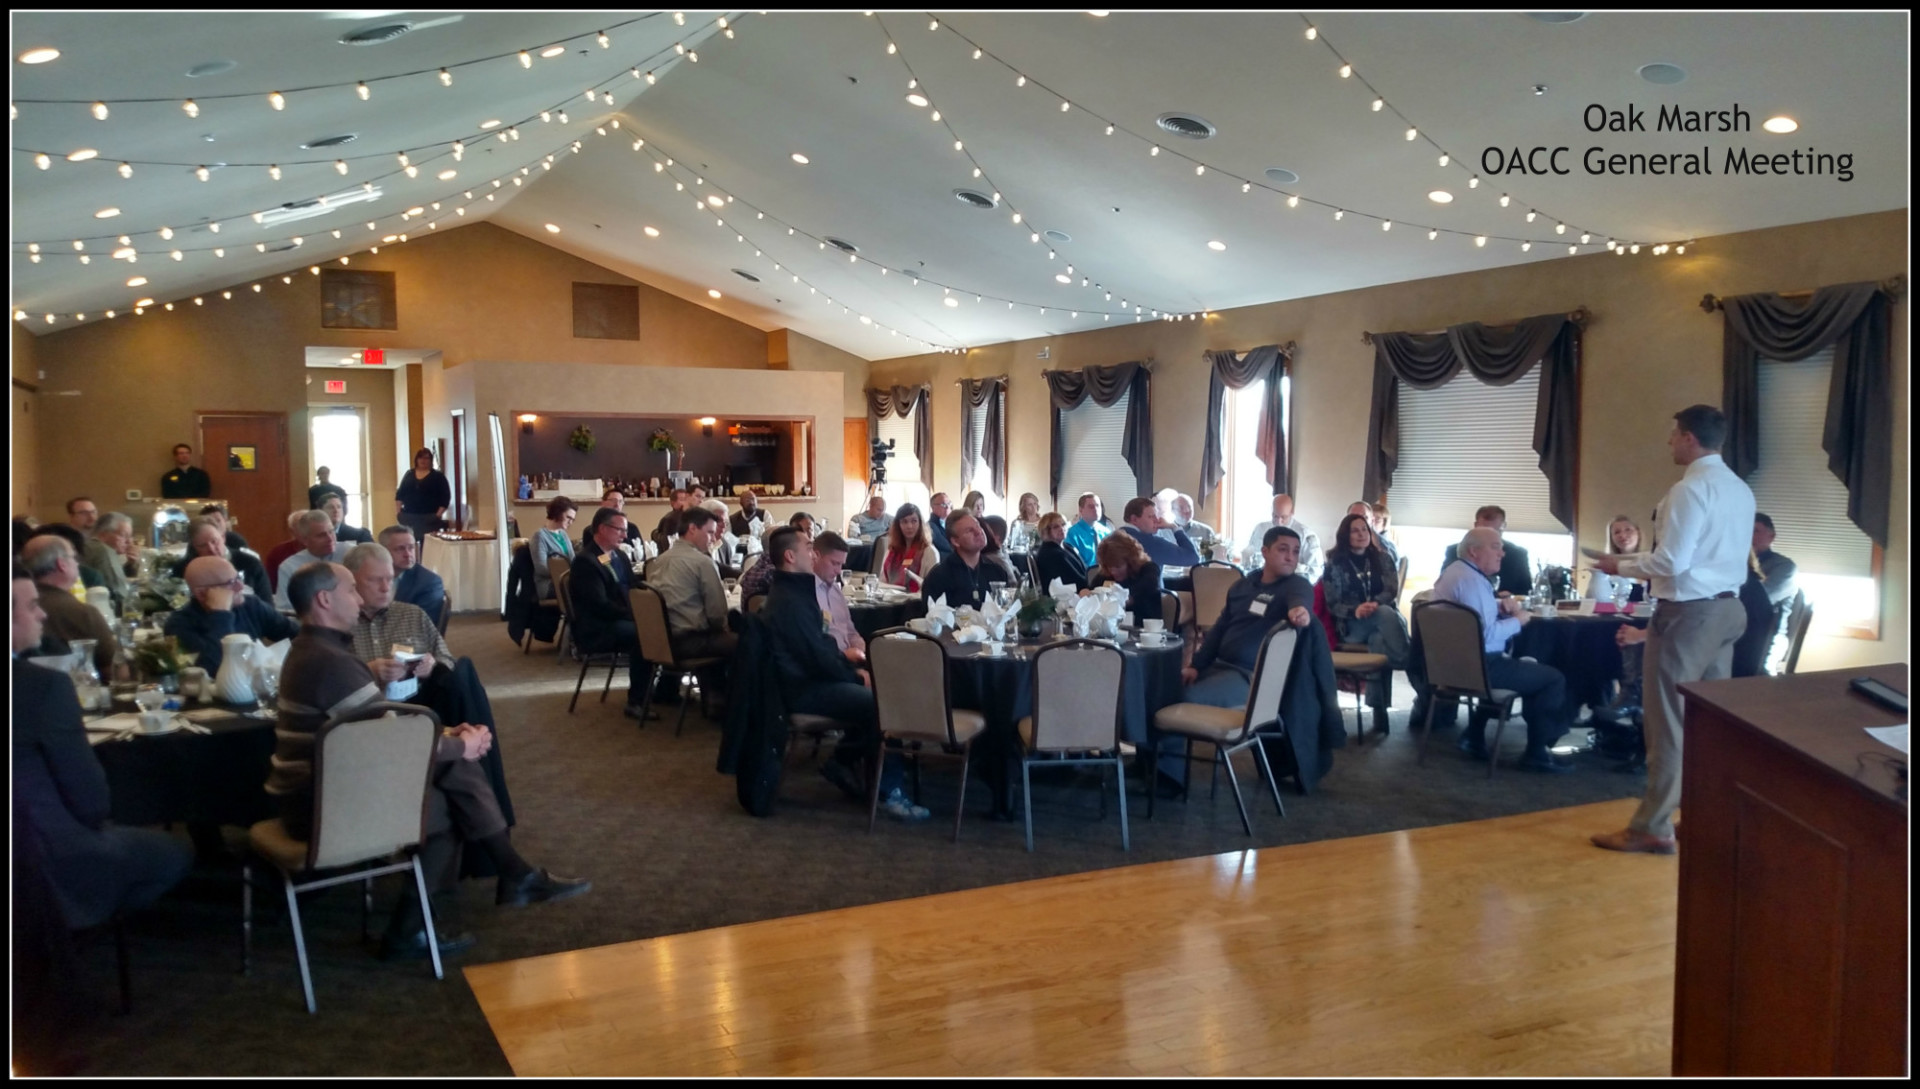 General Meeting at Oak Marsh Golf Course, Oakdale, Minnesota